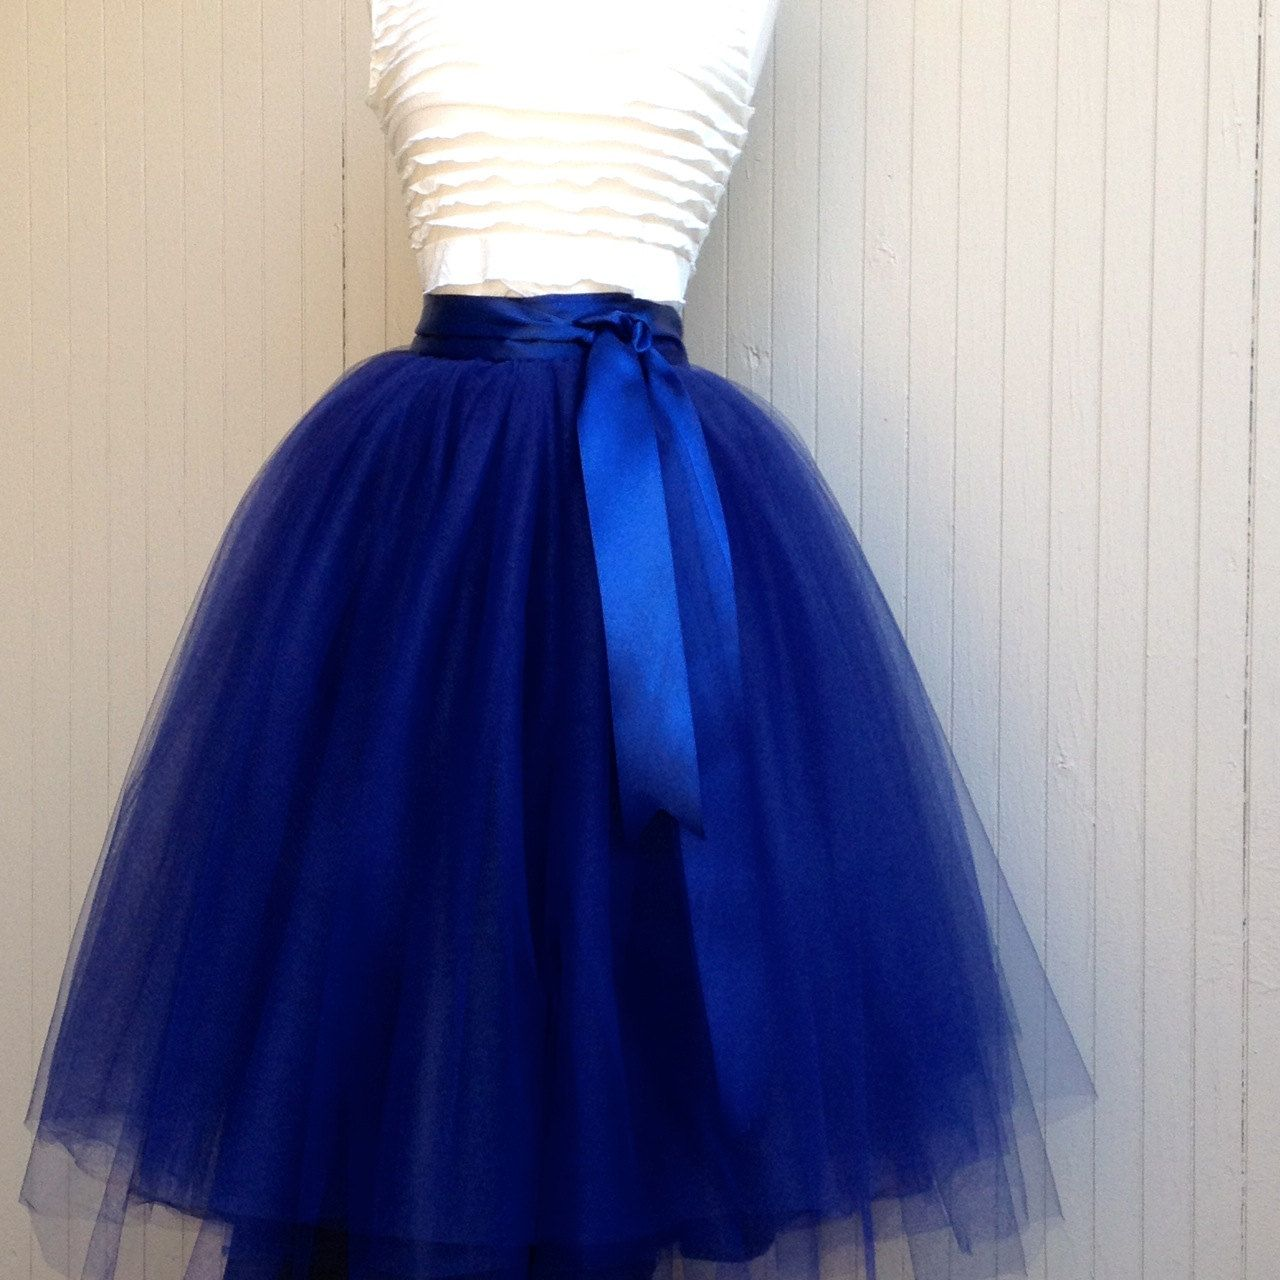 6d4ed7f8a5 Navy blue tulle skirt tutu for women lined in black satin with a navy satin  ribbon waist. Fall fashion trend.. $165.00, via Etsy.